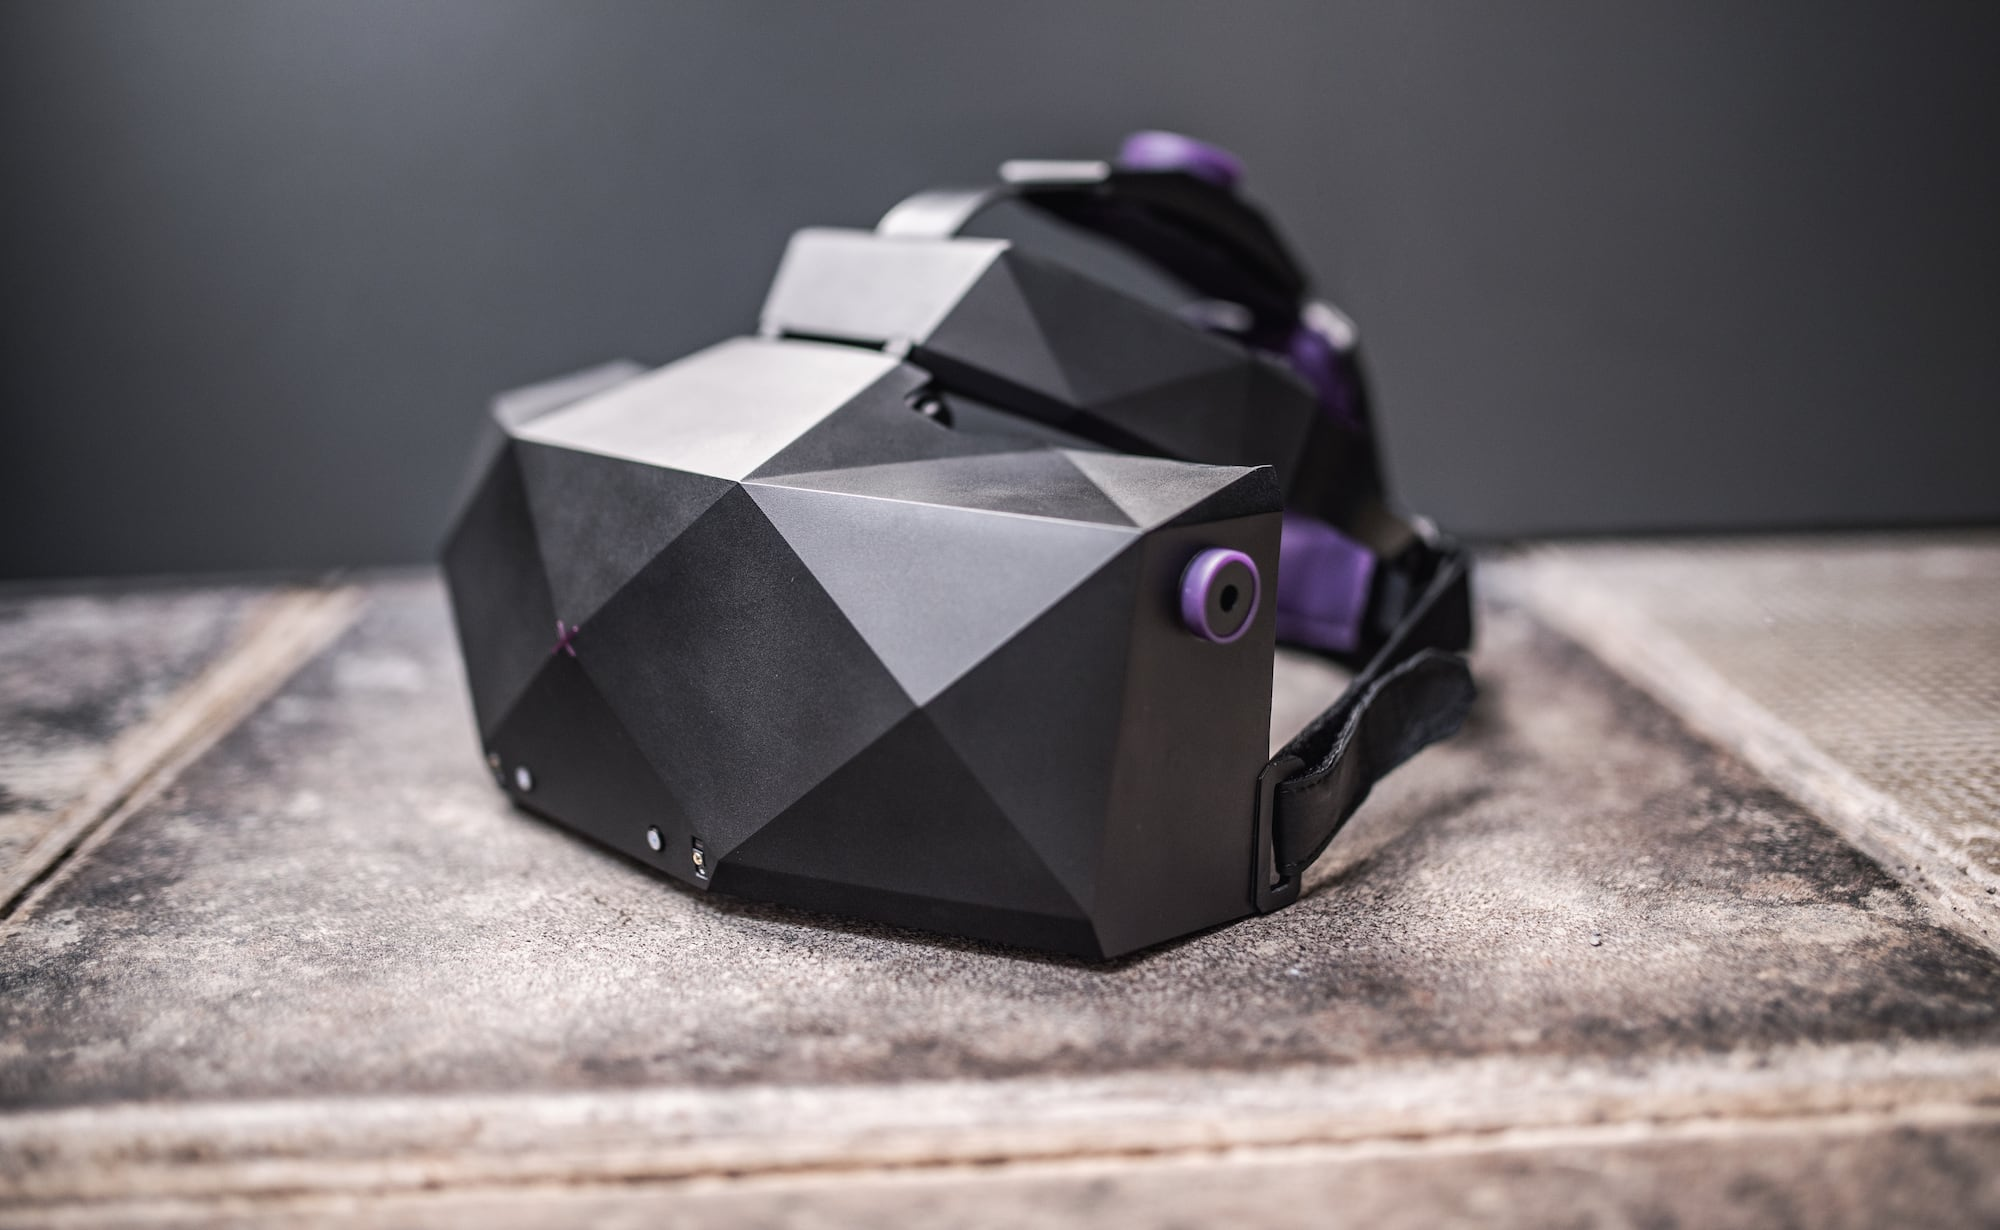 VRgineers XTAL High-Resolution VR Headset immerses you in its 180º field of view